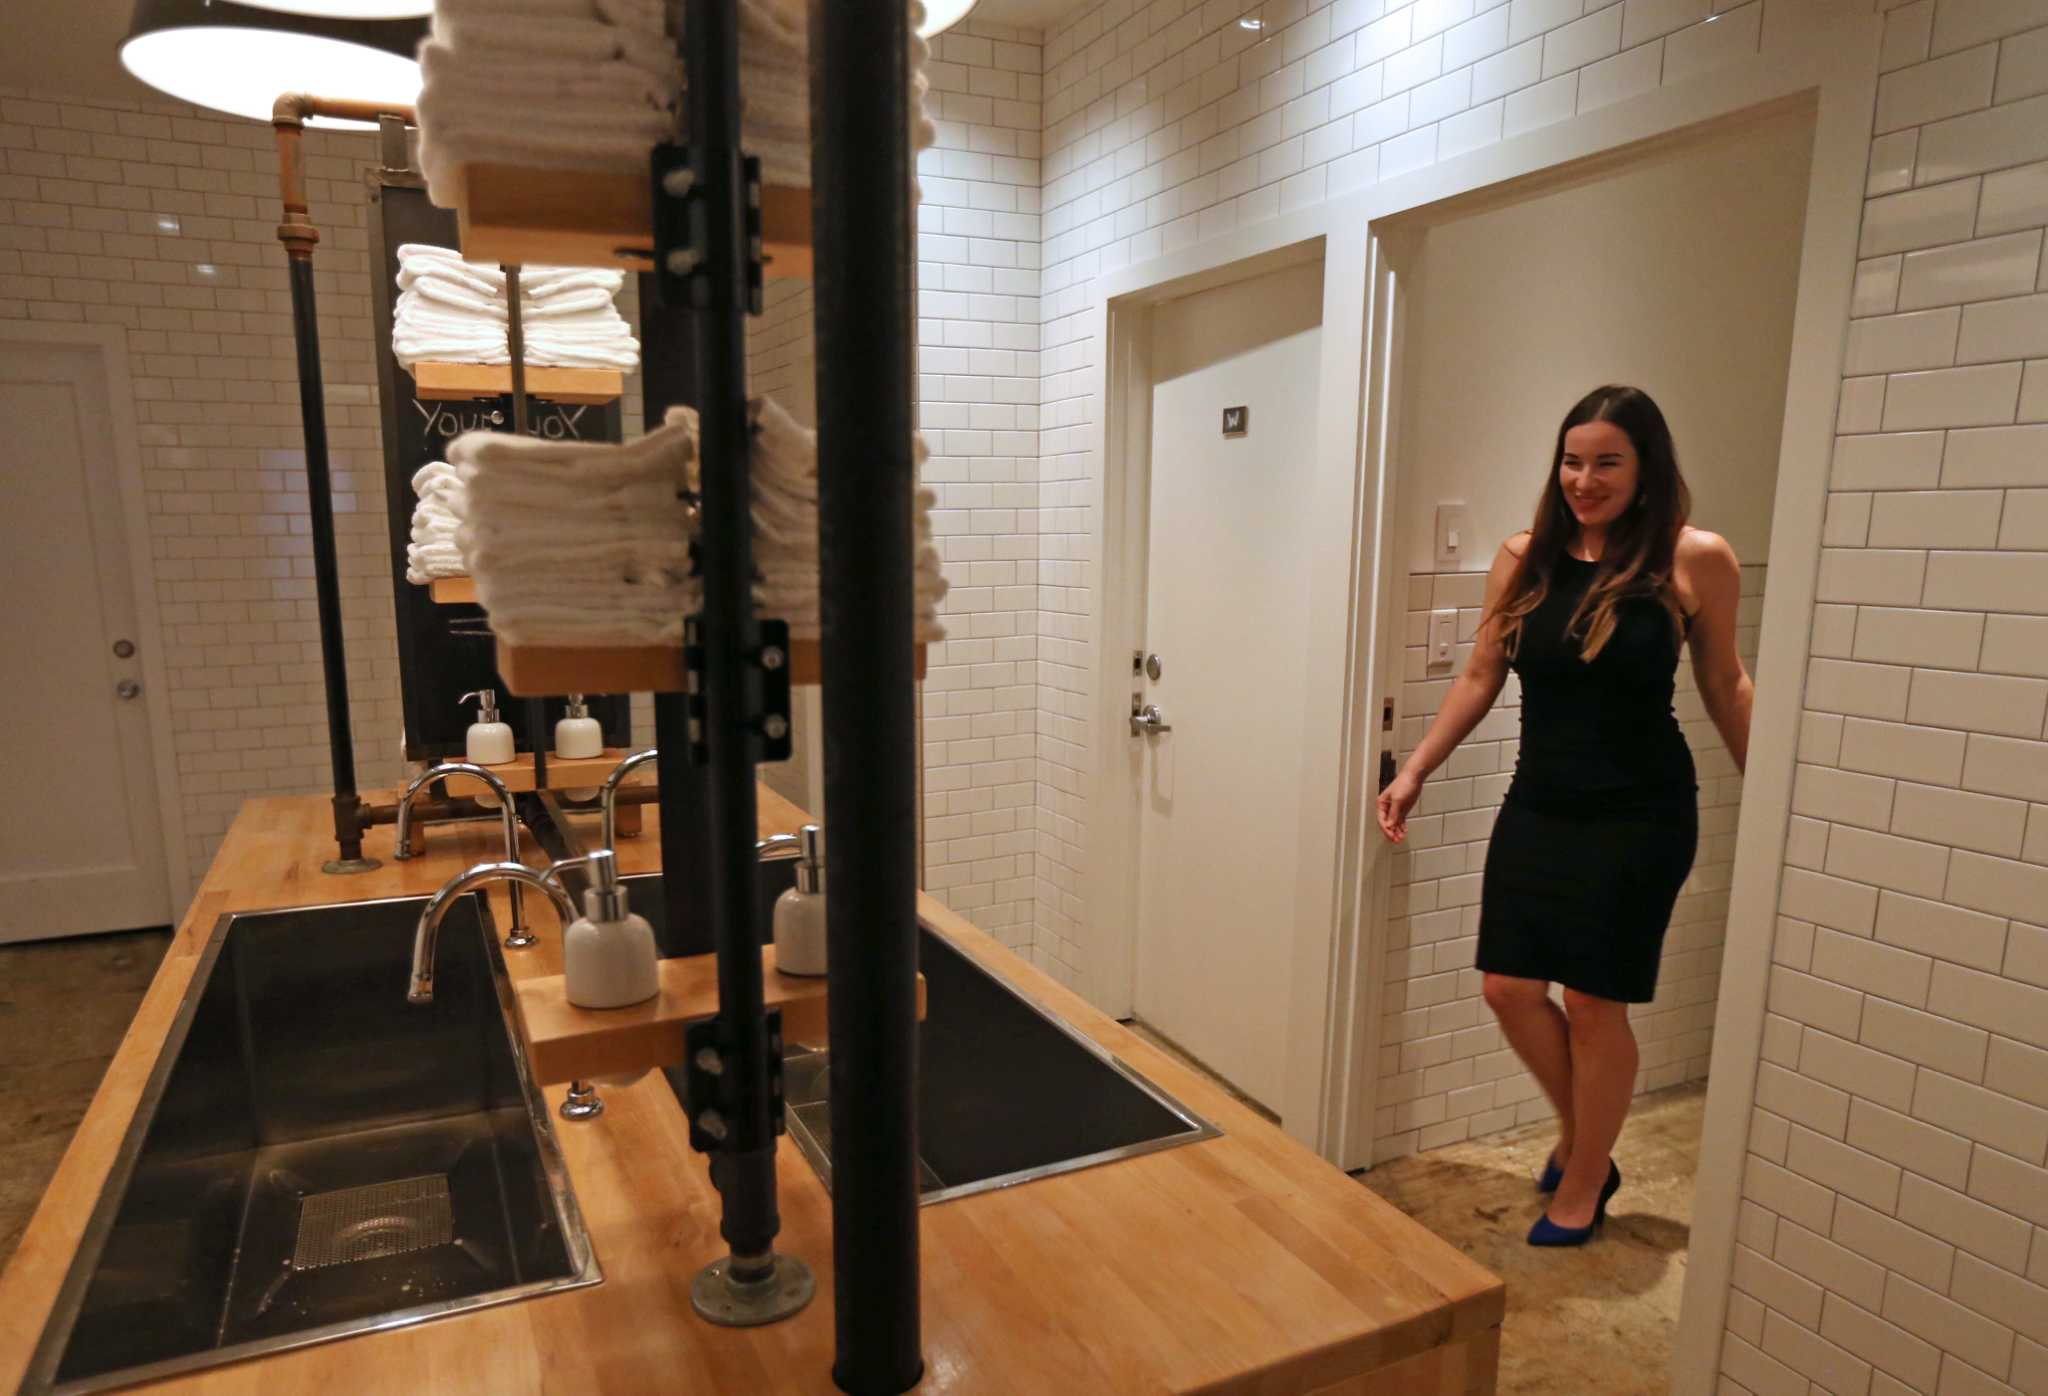 Houston restrooms outpace politics  HoustonChroniclecom